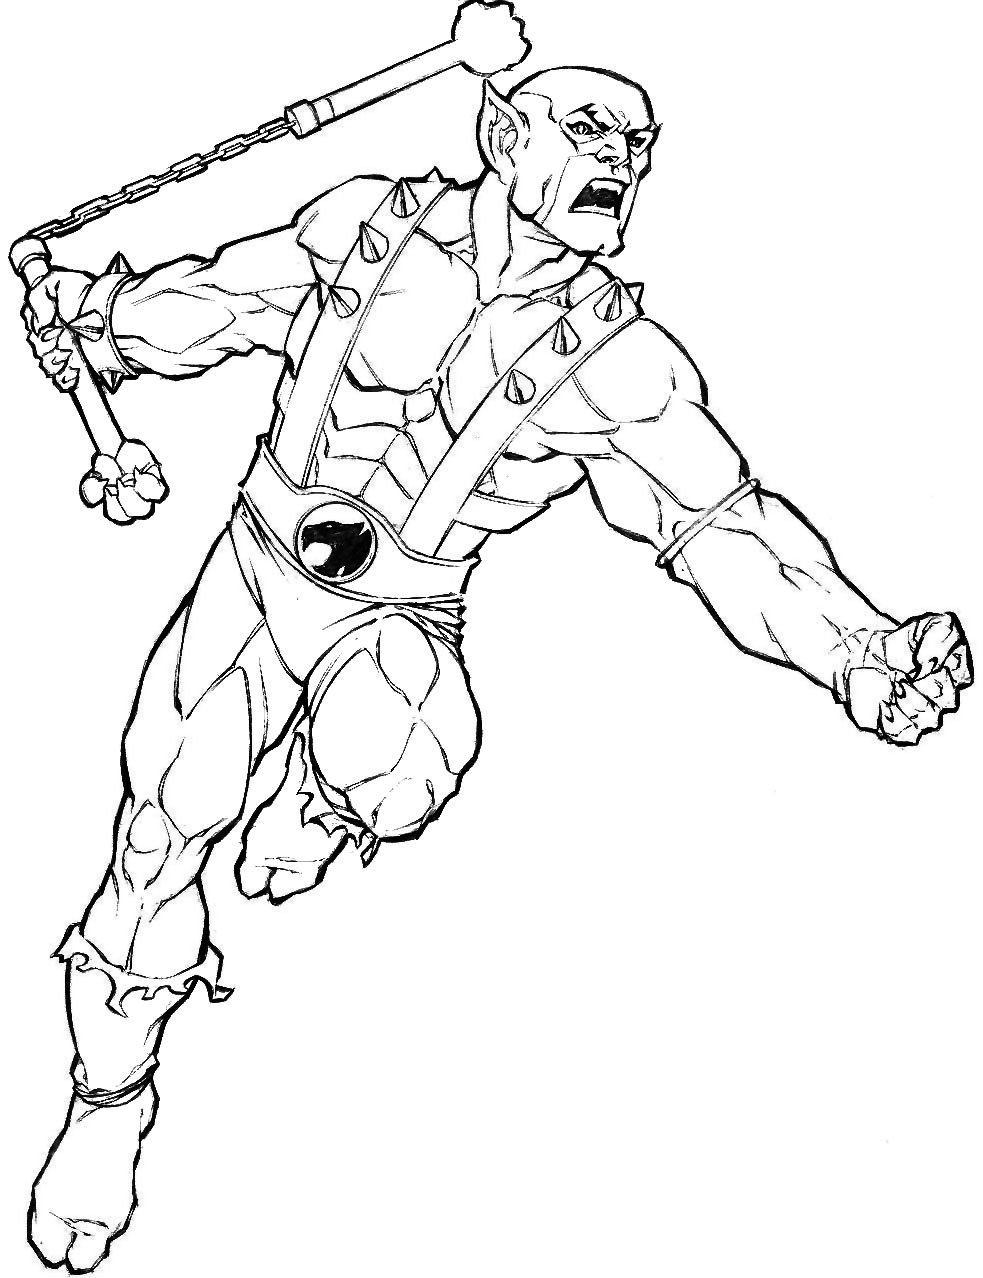 Panthro by christopherstevens on deviantart for Coloring pages thundercats